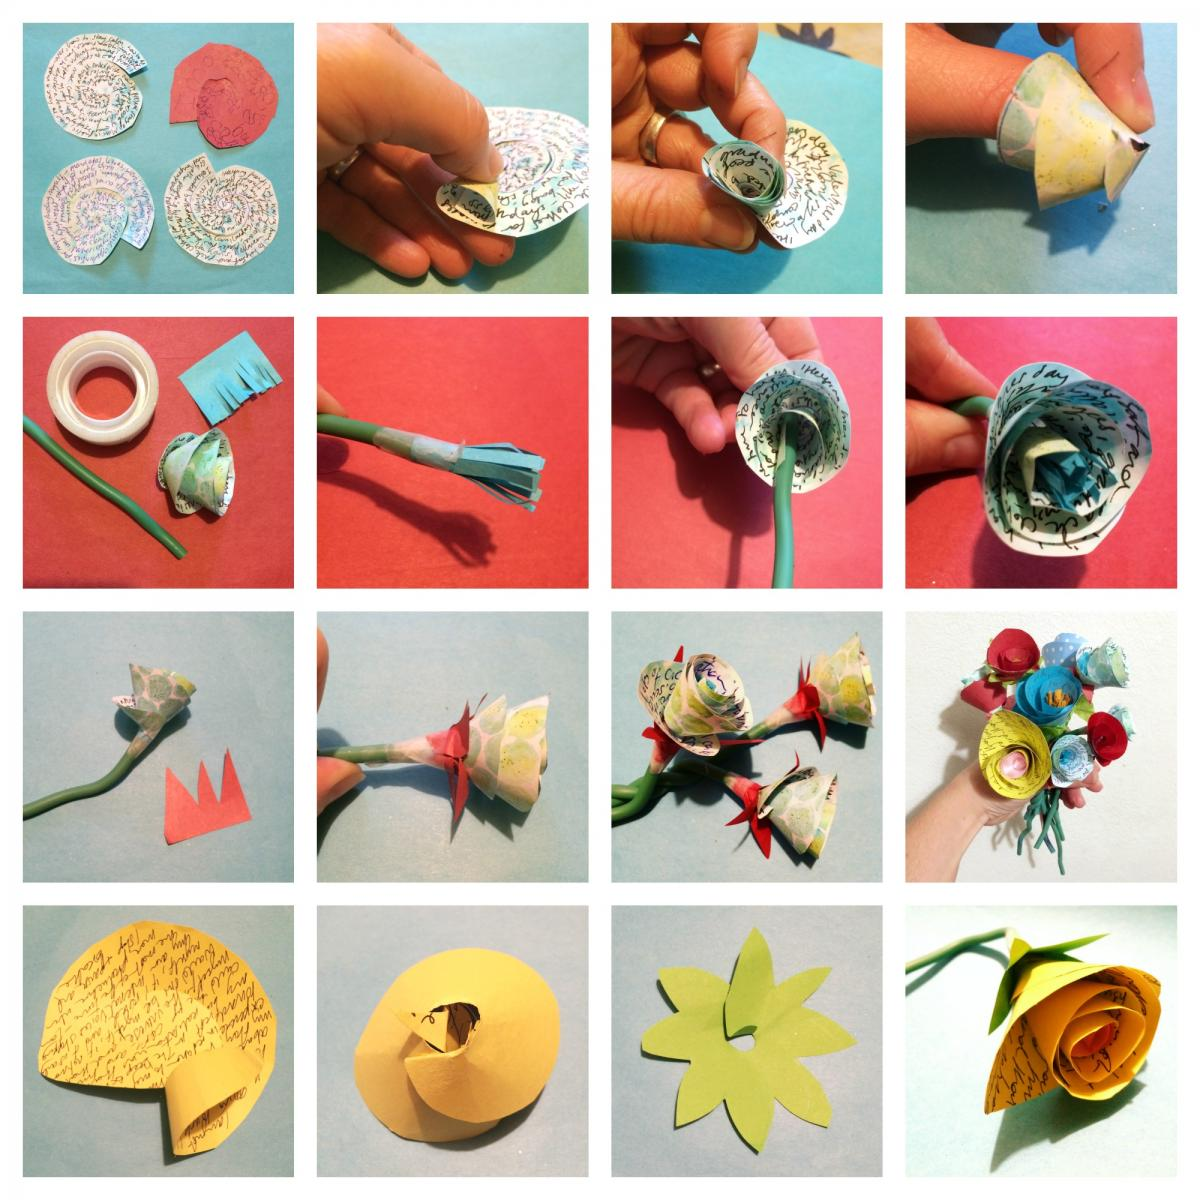 Join us on Weds to remember our year in paper flowers